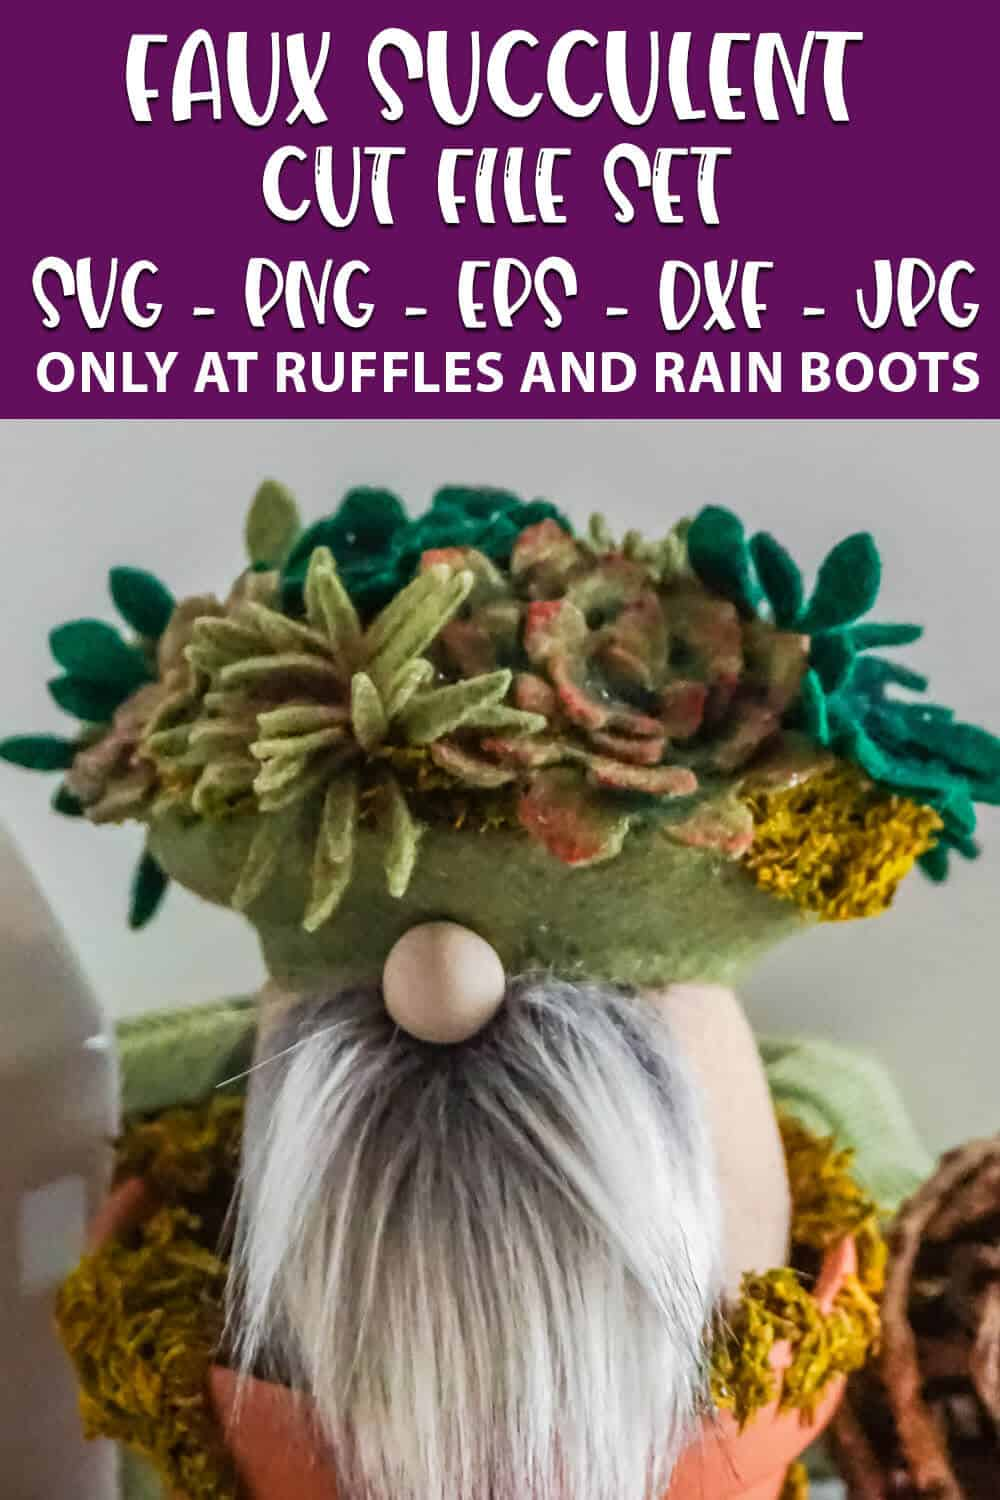 diy gnome featuring felt succulents with text which reads faux succulent cut file set svg png eps dxf jpg